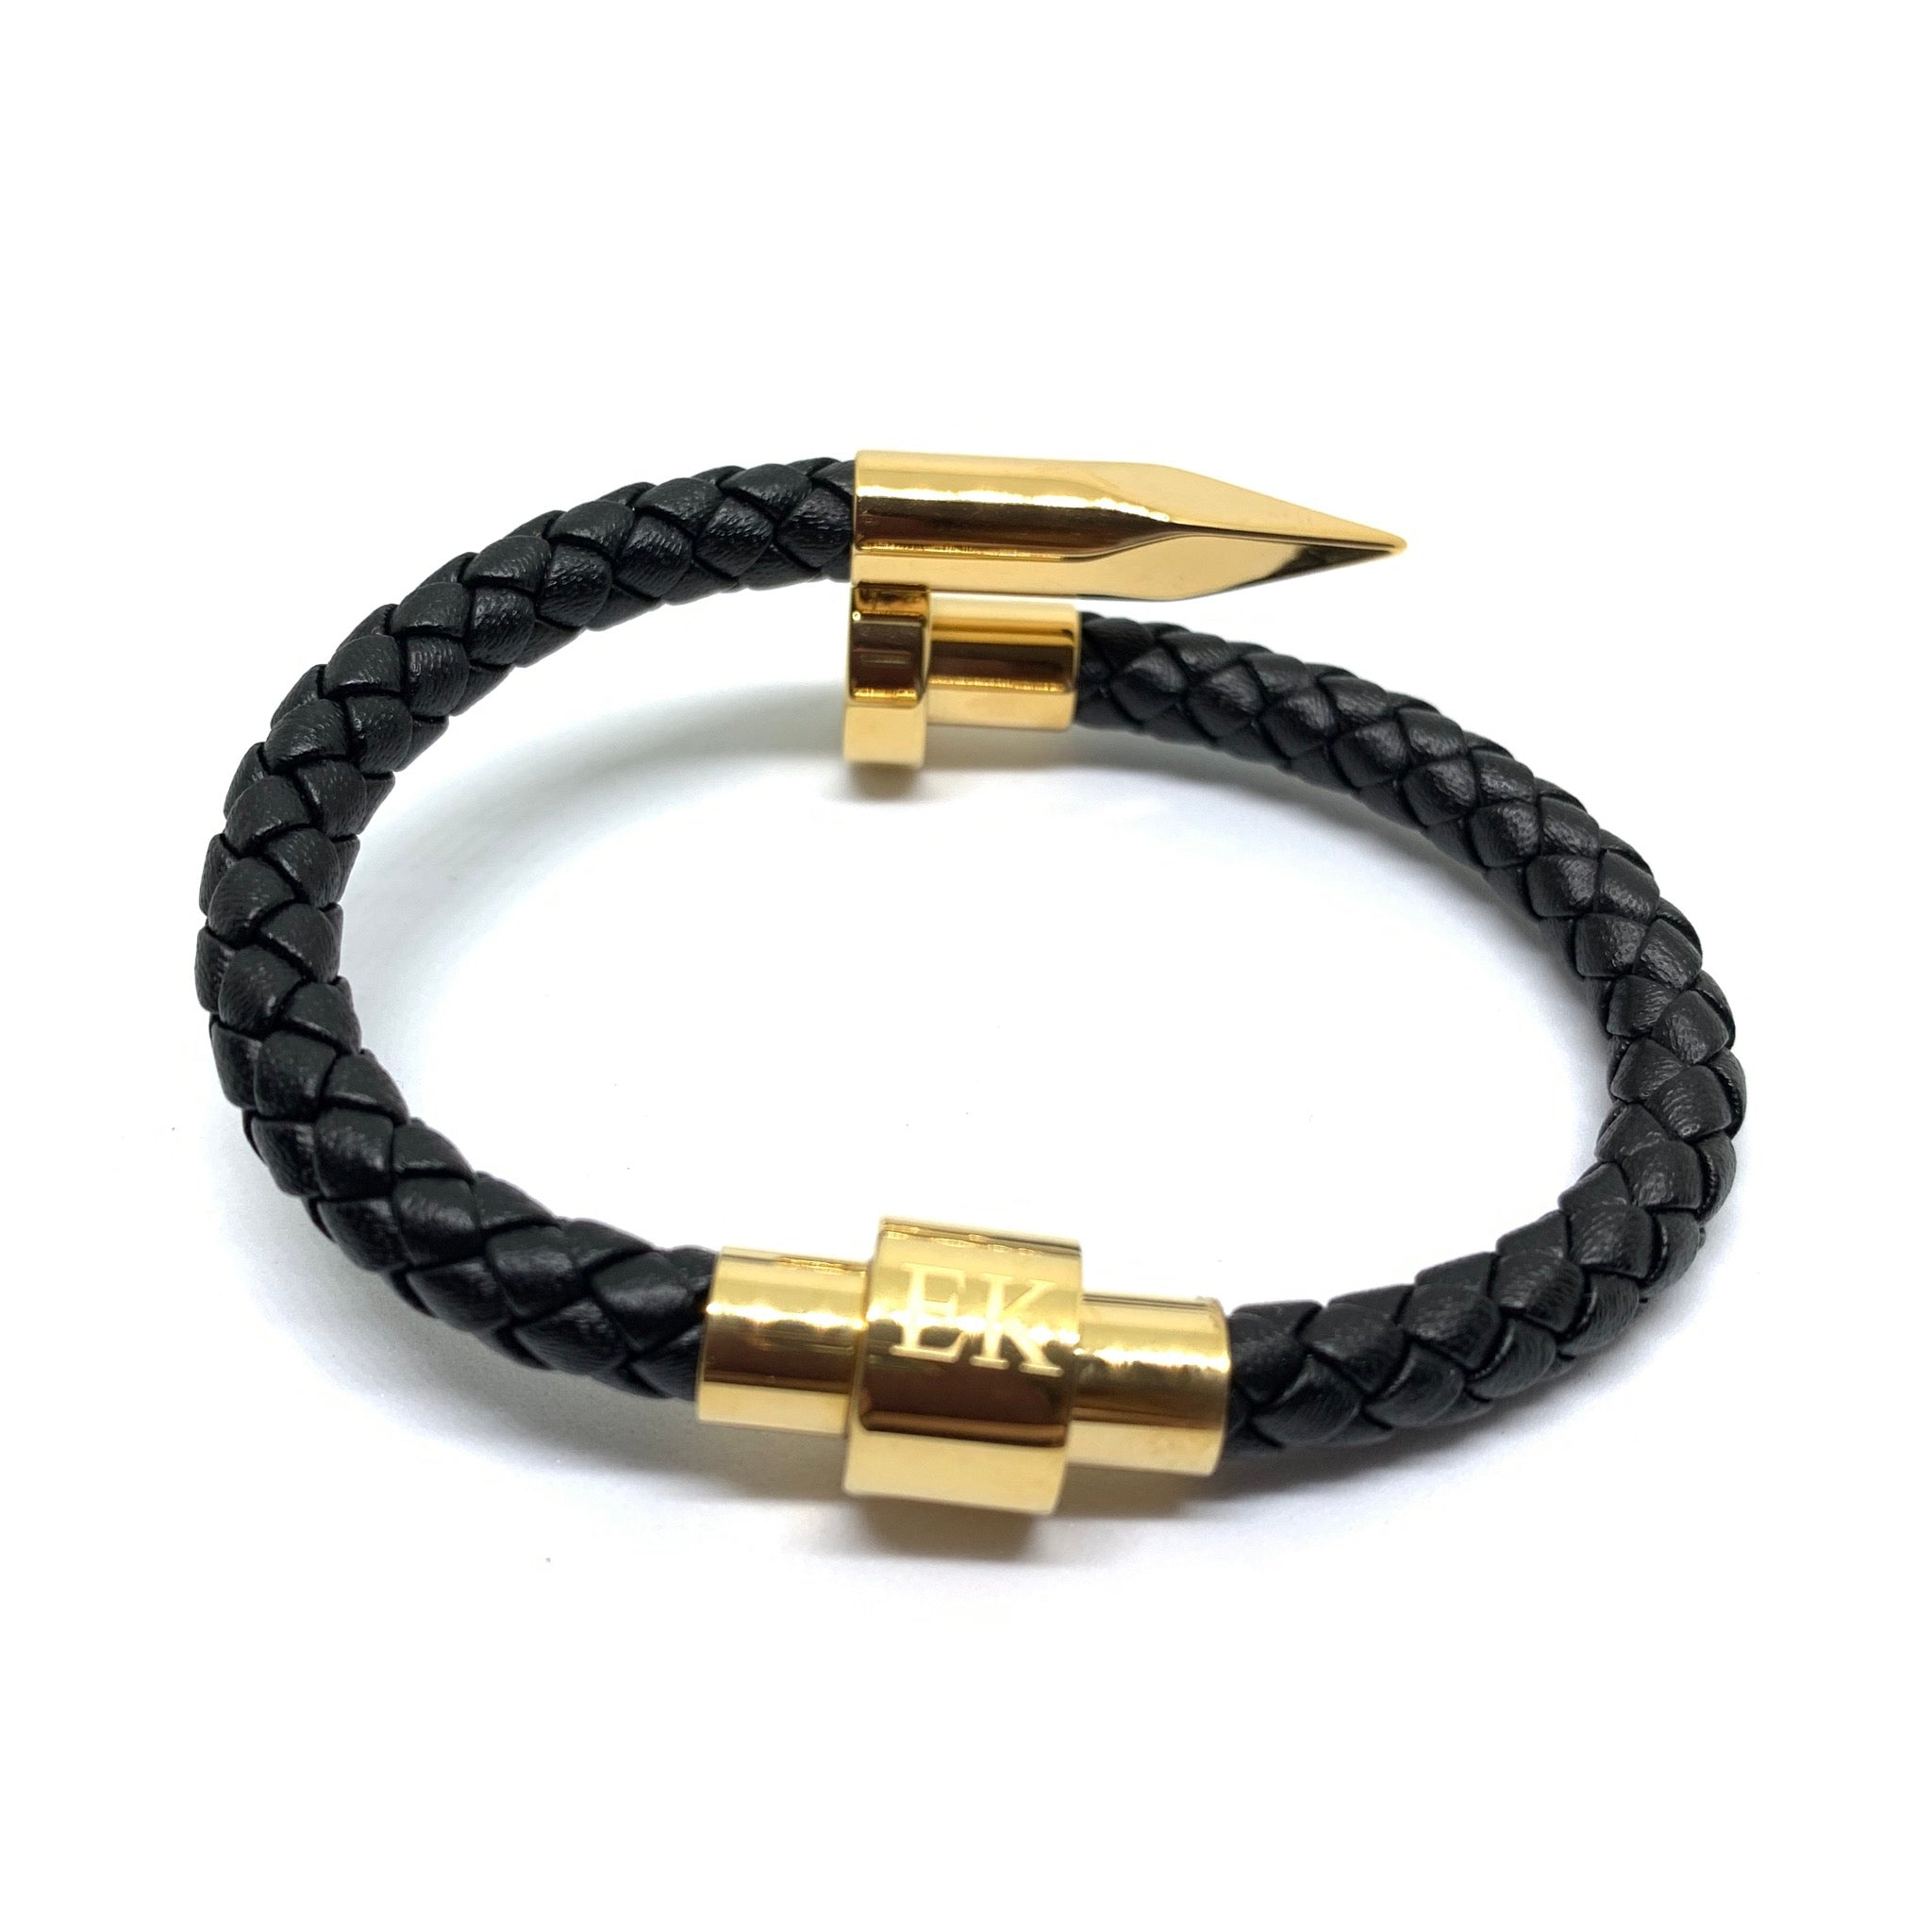 The Tack Leather Bracelet (Gold)